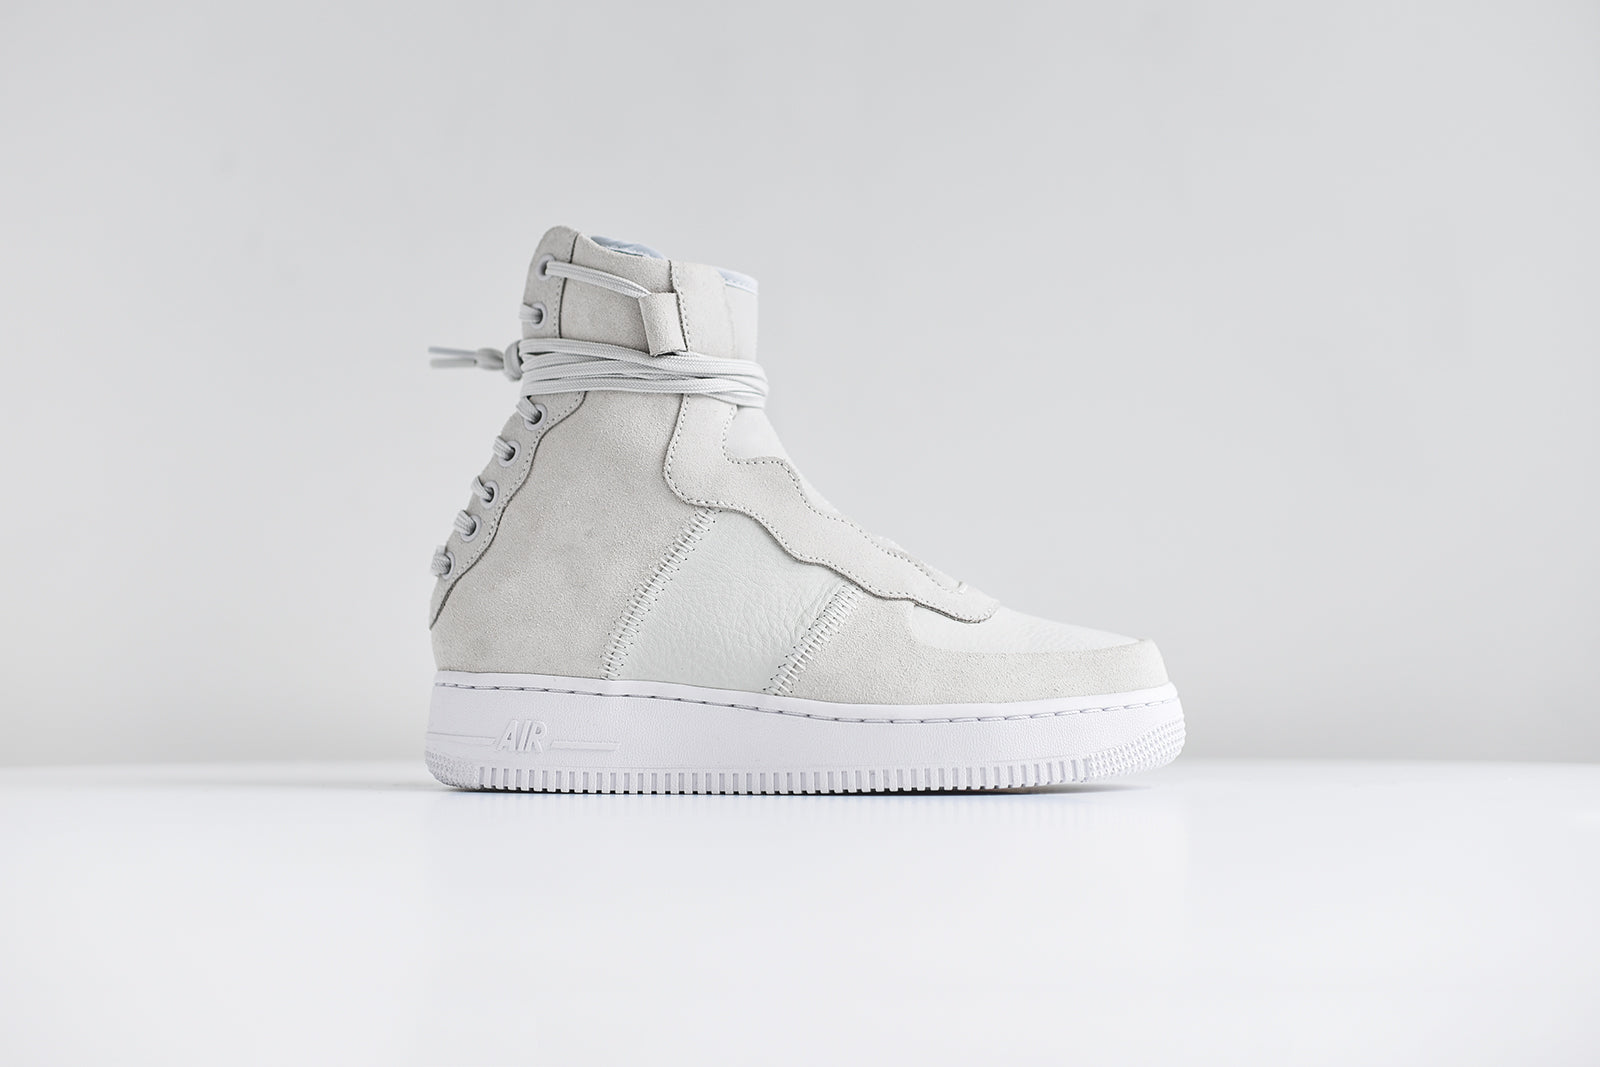 Nike WMNS Air Force 1 Rebel XX - Off White / Light Silver